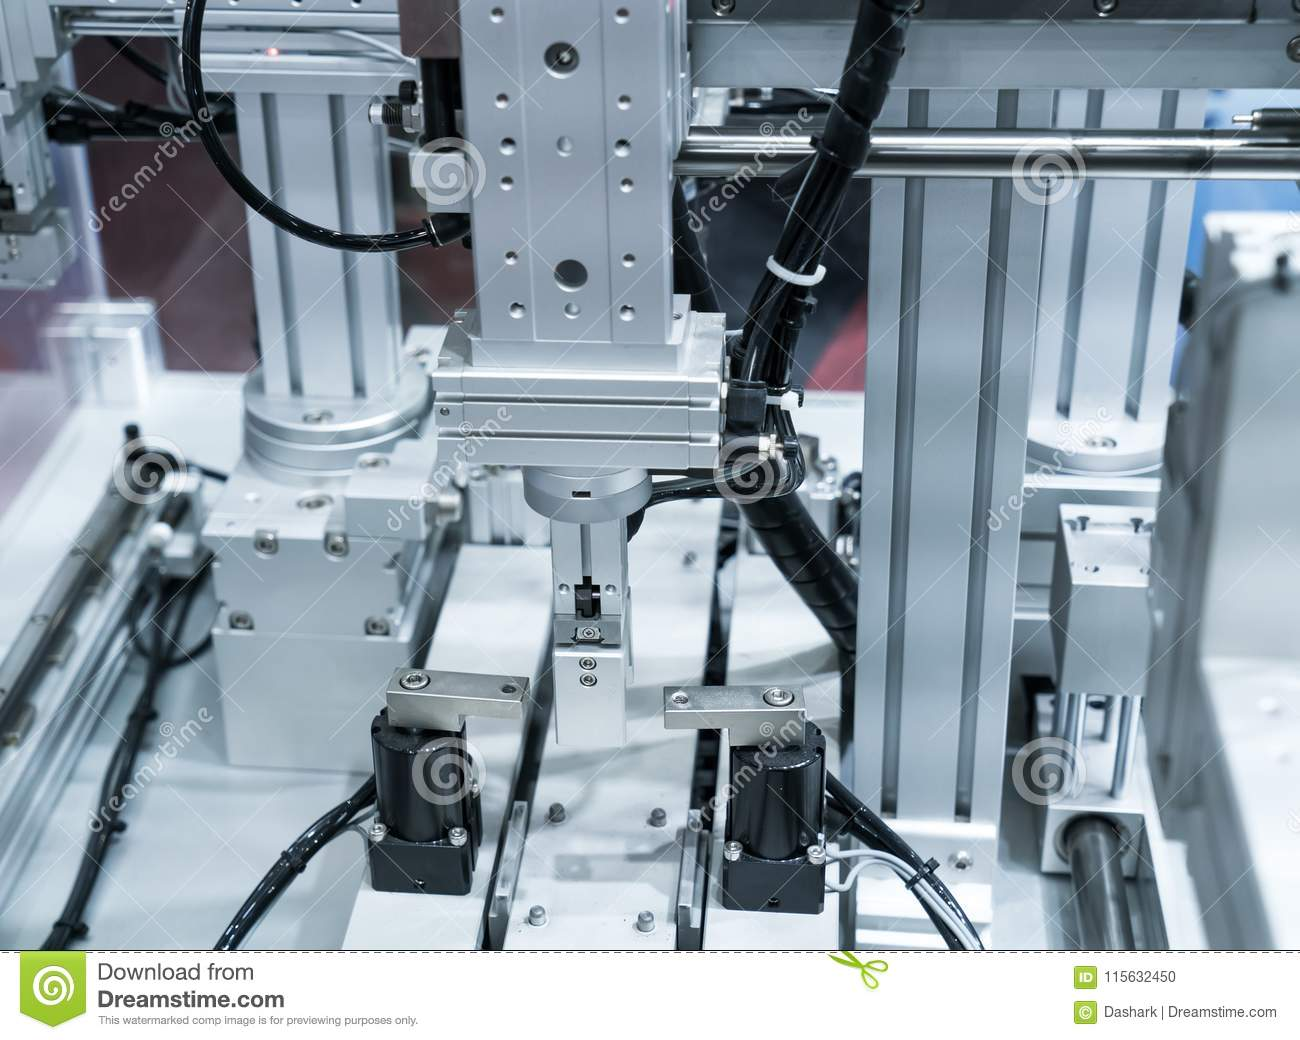 Robotic machine tool in industrial manufacture plant,Smart factory